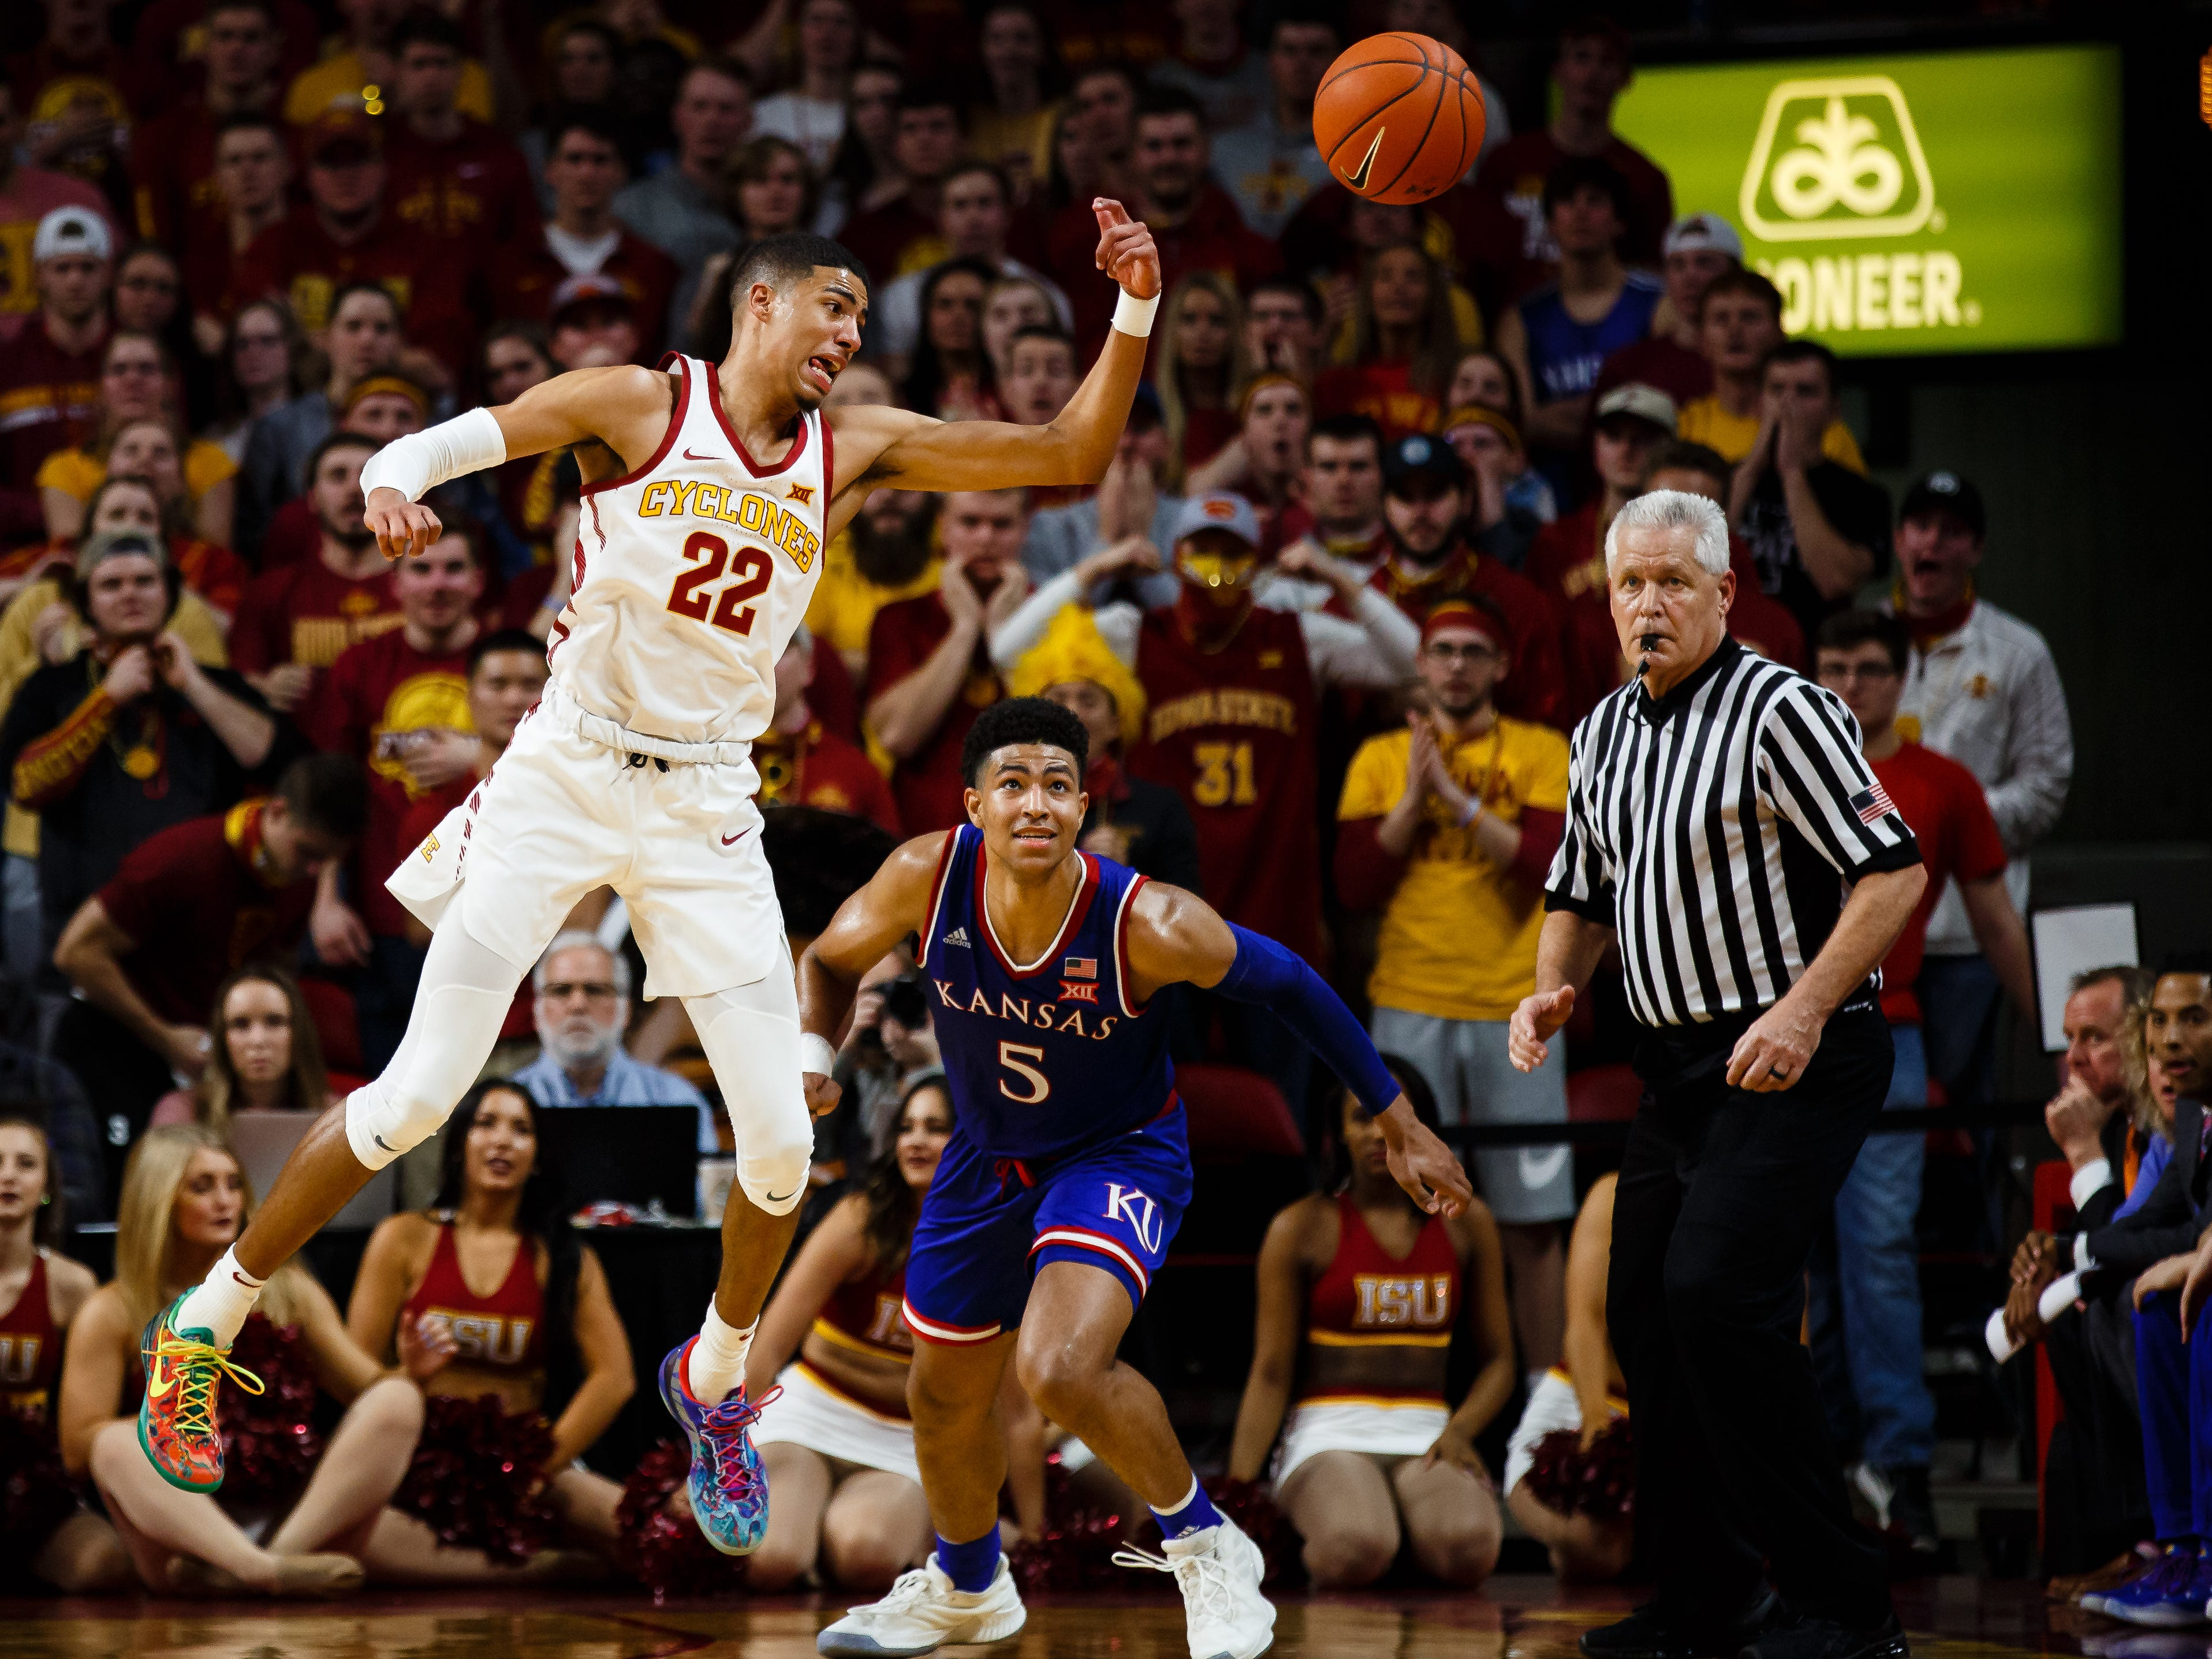 Iowa State's Tyrese Haliburton (22) intercepts a pass during the second half of their basketball game on Saturday, Jan. 5, 2019, in Ames. Iowa State would go on to beat Kansas 77-60.